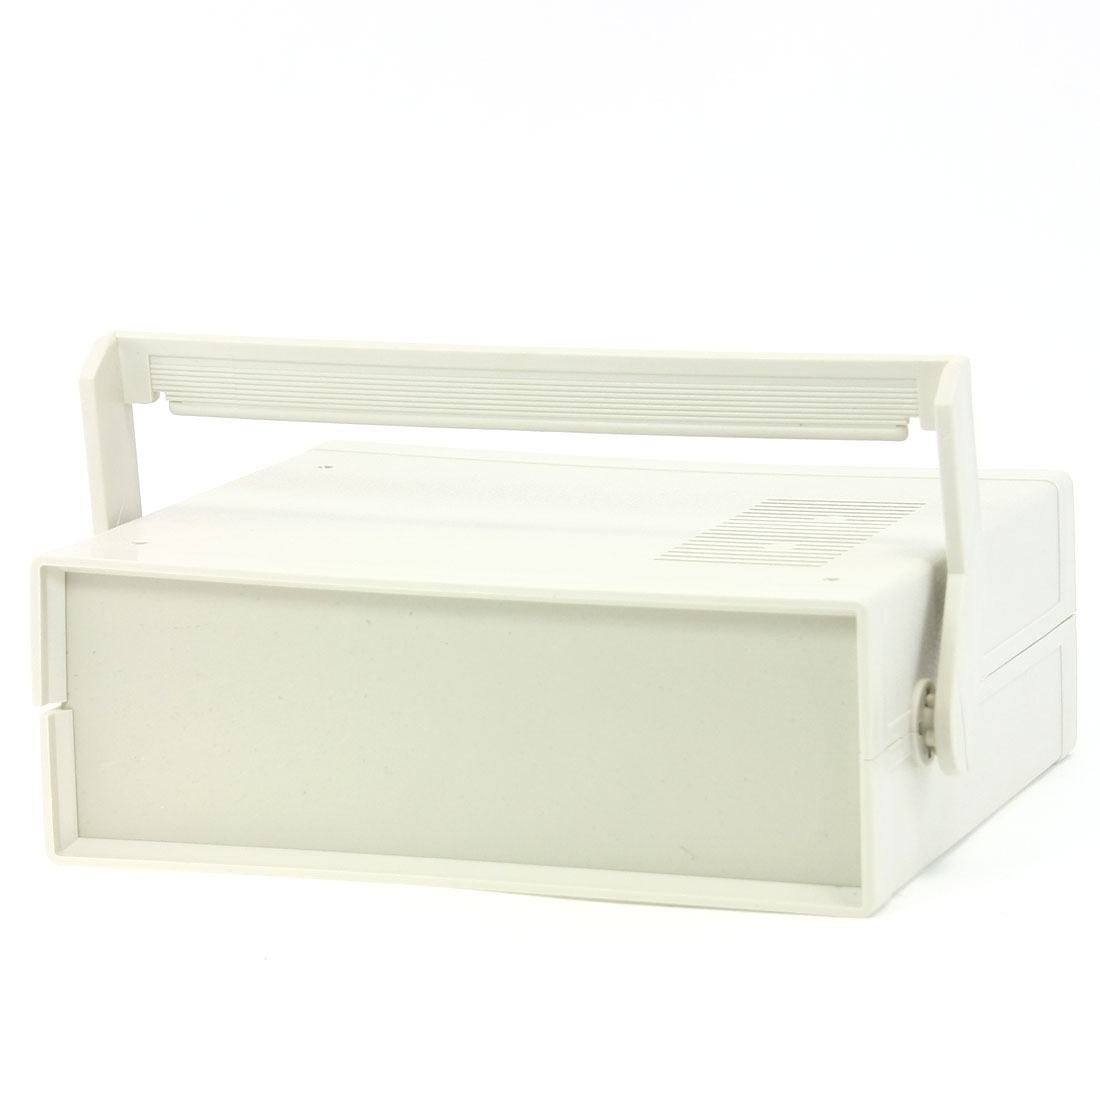 198mm x 175mm x 70mm Plastic Enclosure Case DIY Junction Box